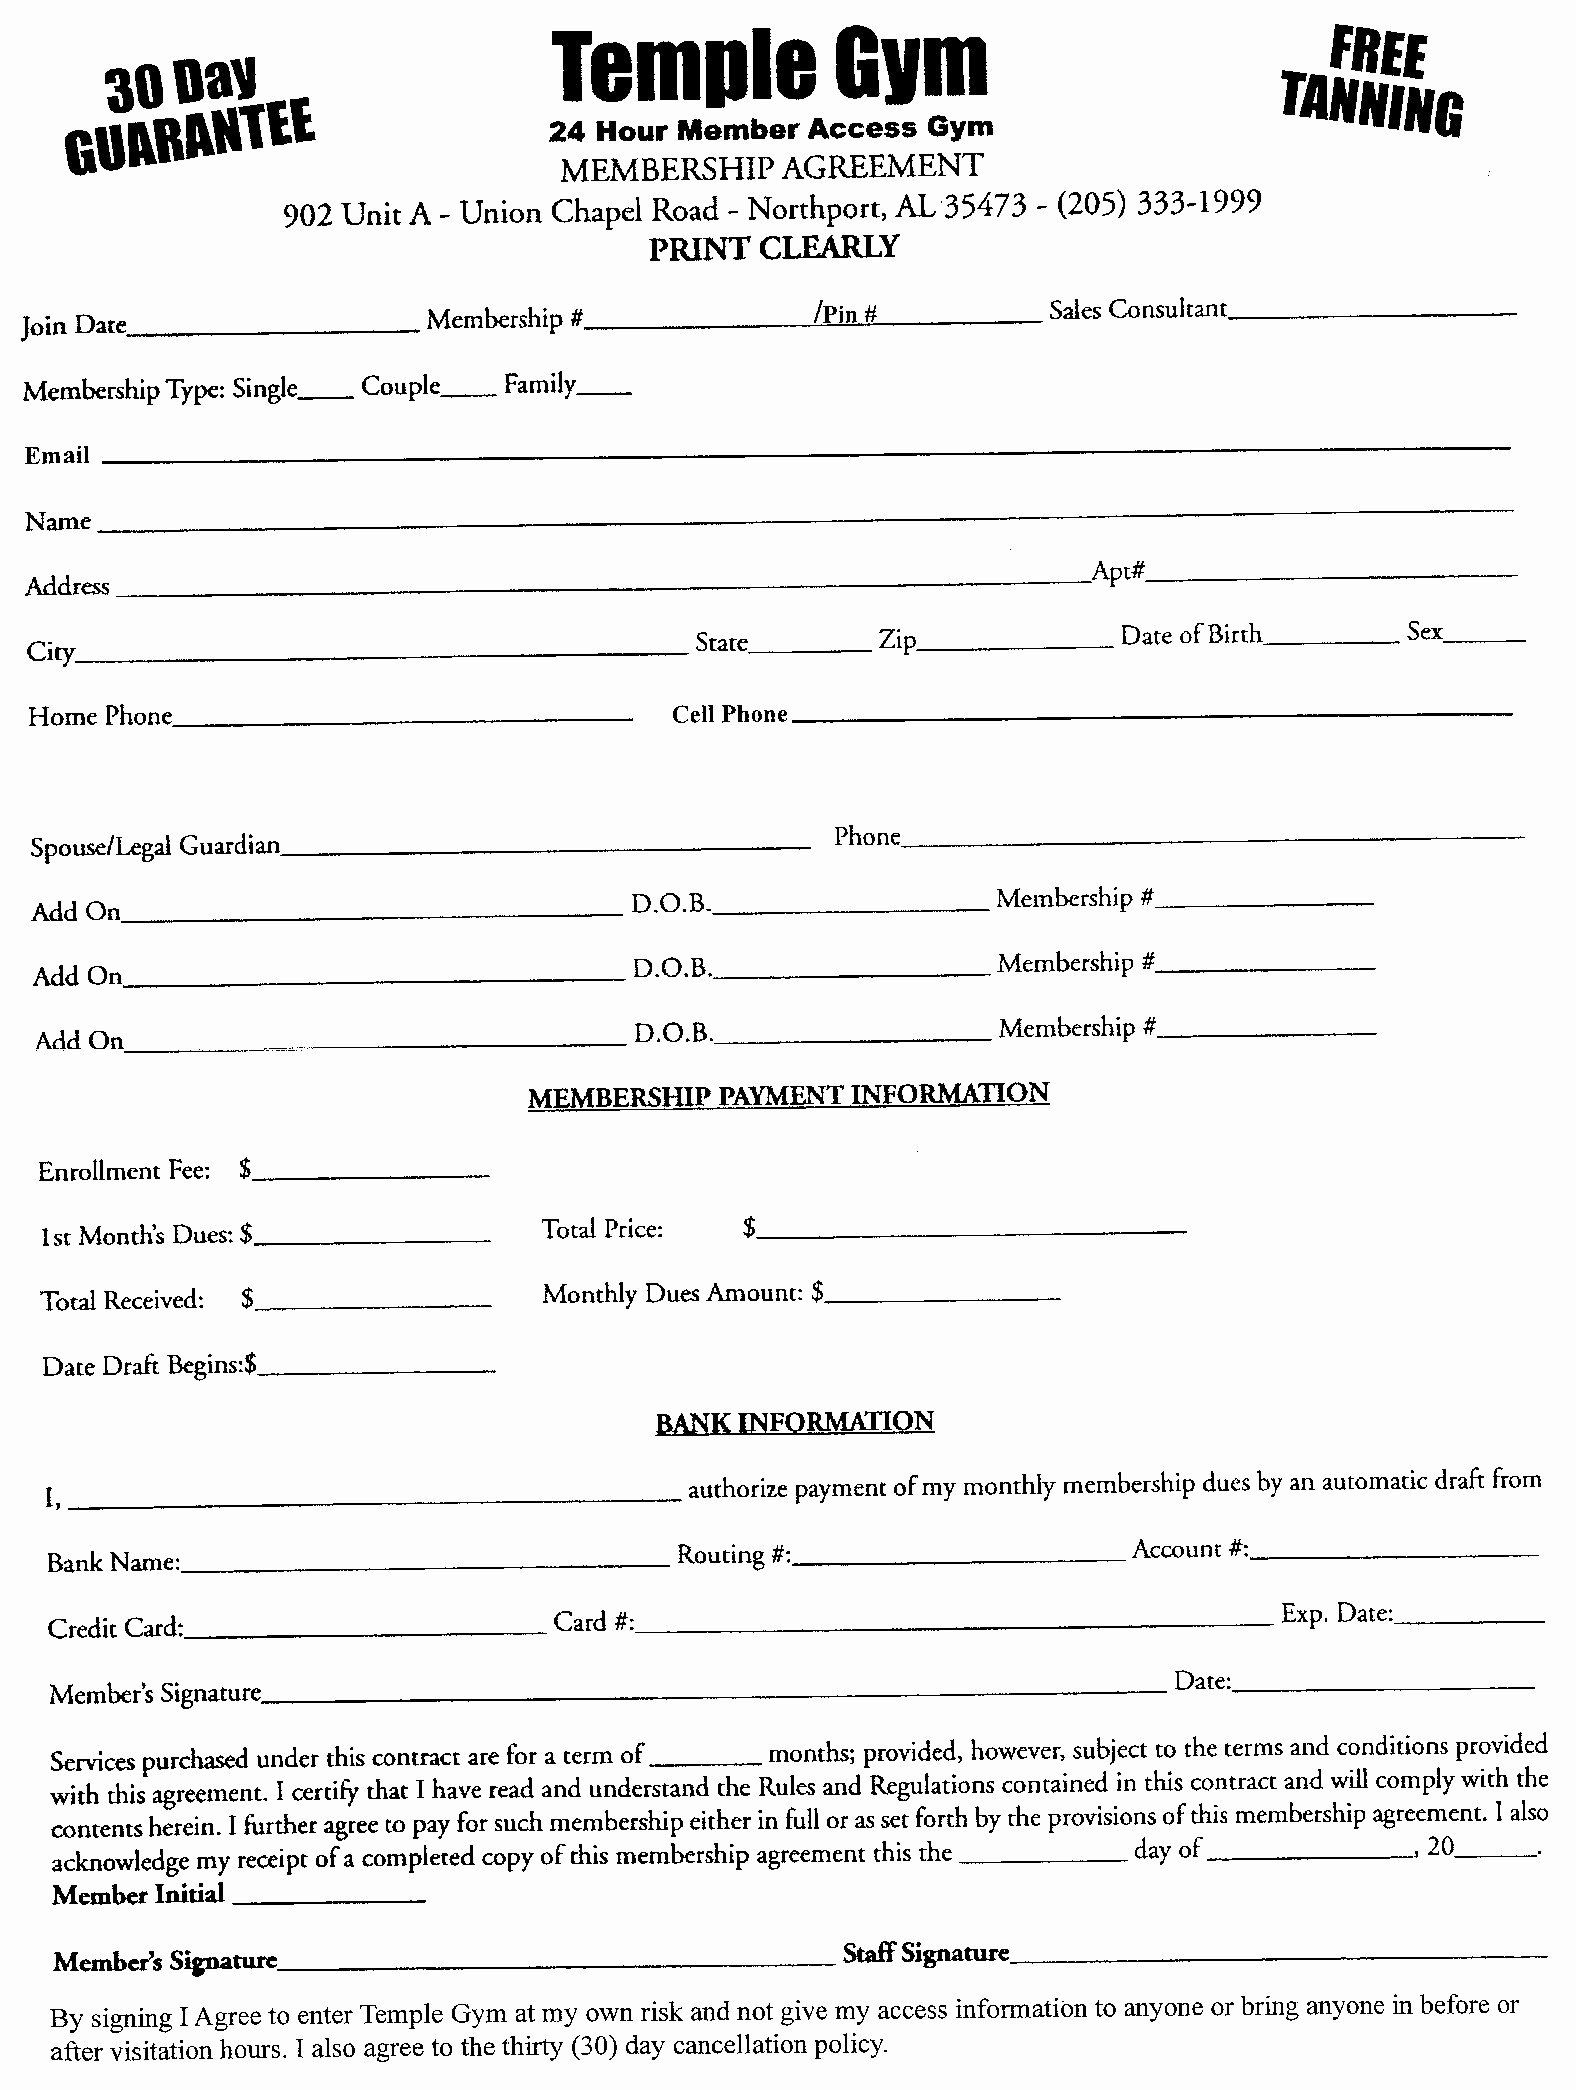 Gym Membership Agreement Template Awesome Free Fitness Center Legal Membership Waiver forms for Gyms